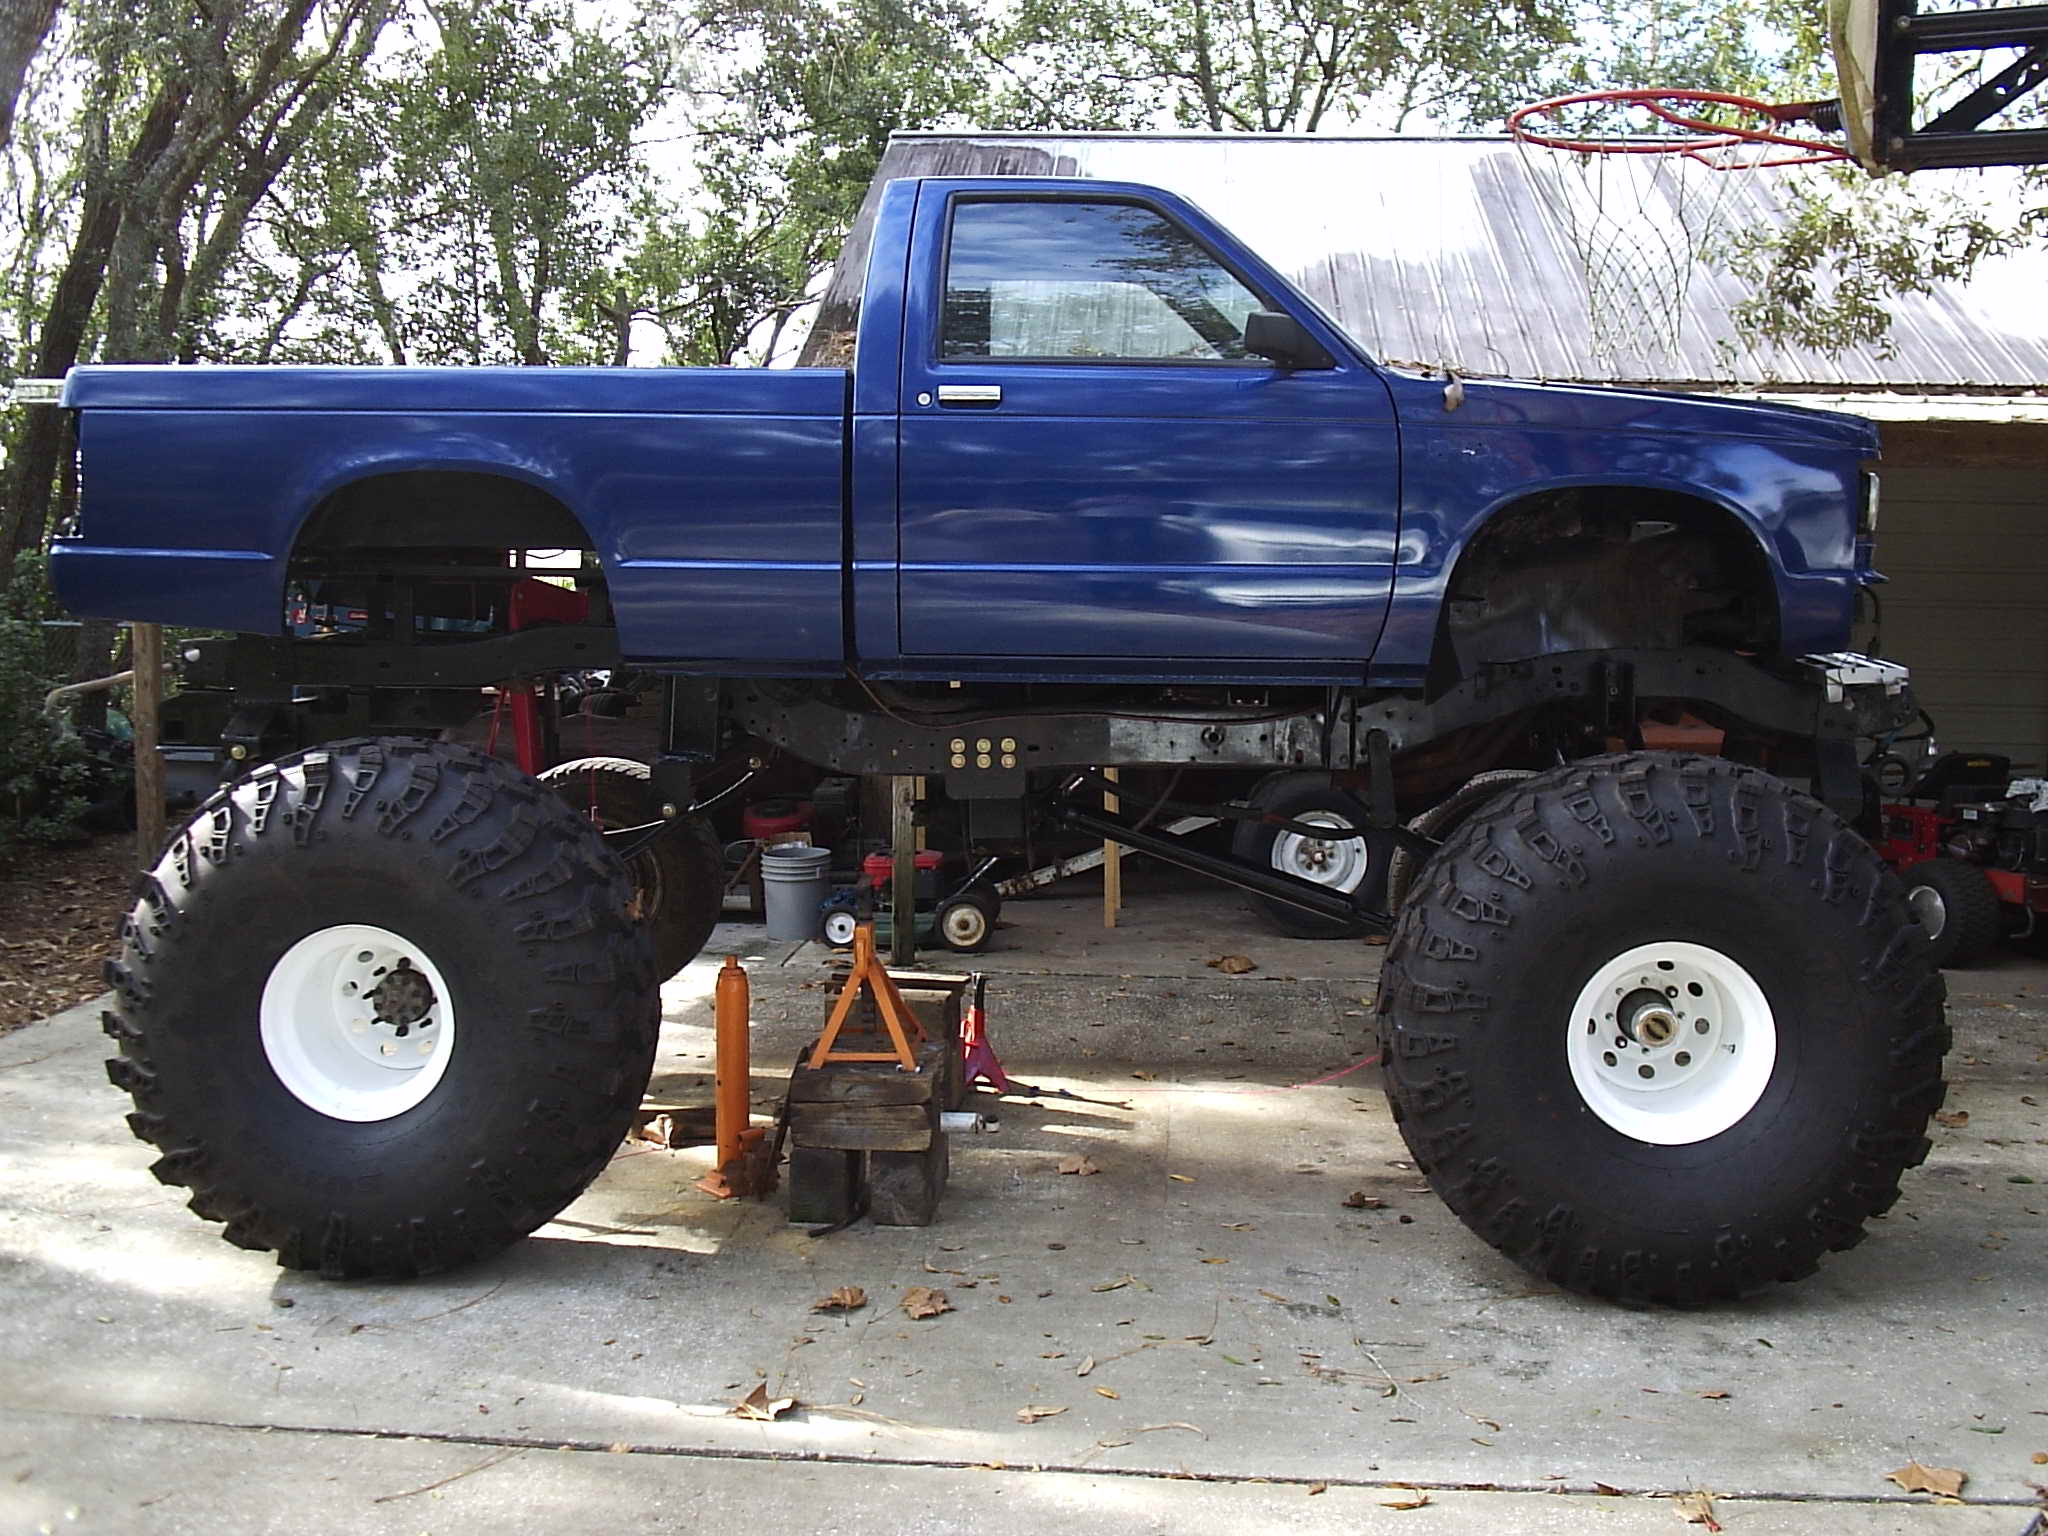 Monster truck pictures how to make s cool truck how to make mini monster truck publicscrutiny Images